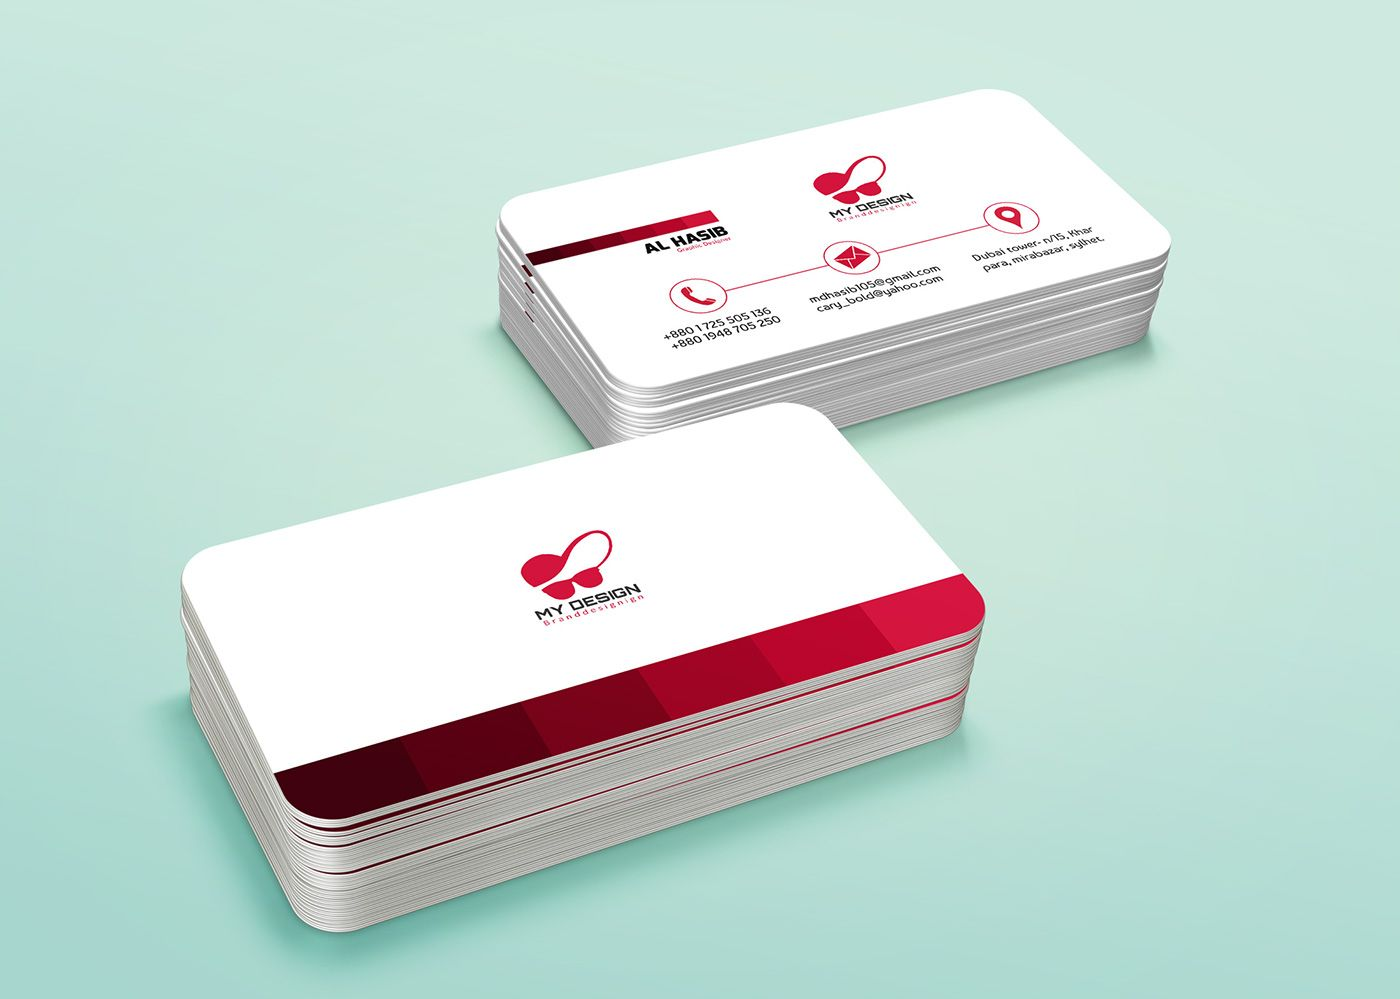 Outstanding business card design for your business or personal use outstanding business card design for your business or personal use need any custom sizes no problem standard business card size or vista print reheart Choice Image